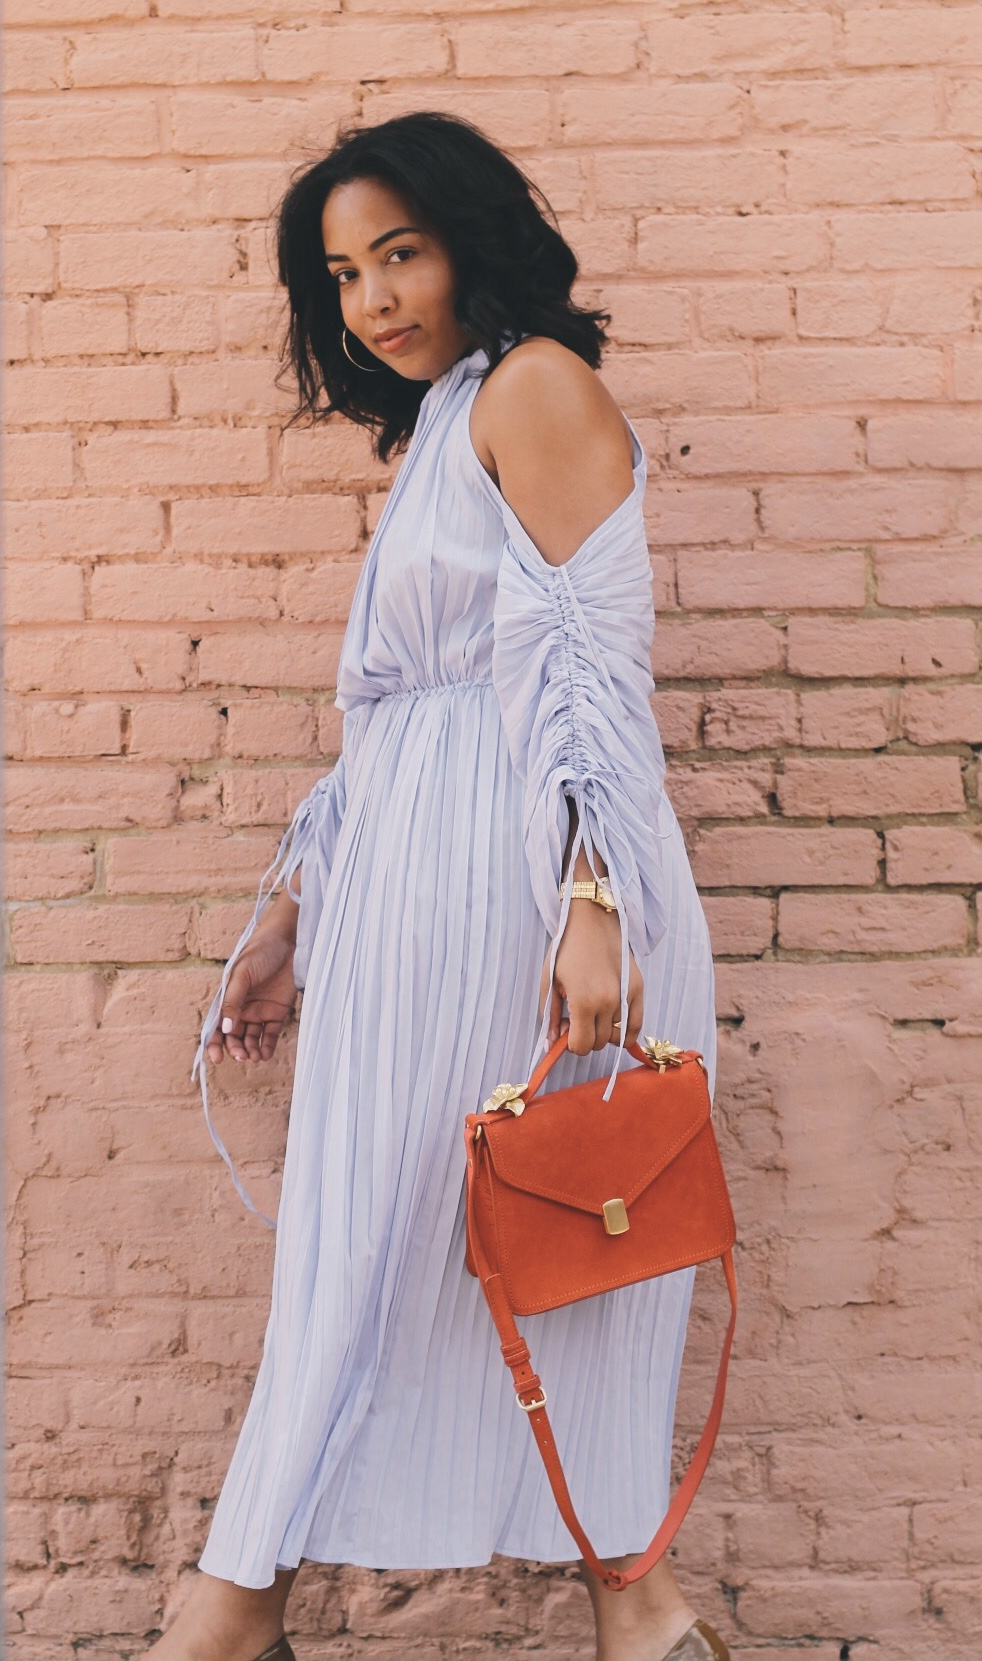 Warehouse-UK-asos-pleated-cold-shoulder-dress-in-lavender-zara-orange-suede-bag-House-of-CB-paris-nude-pumps-8.jpg